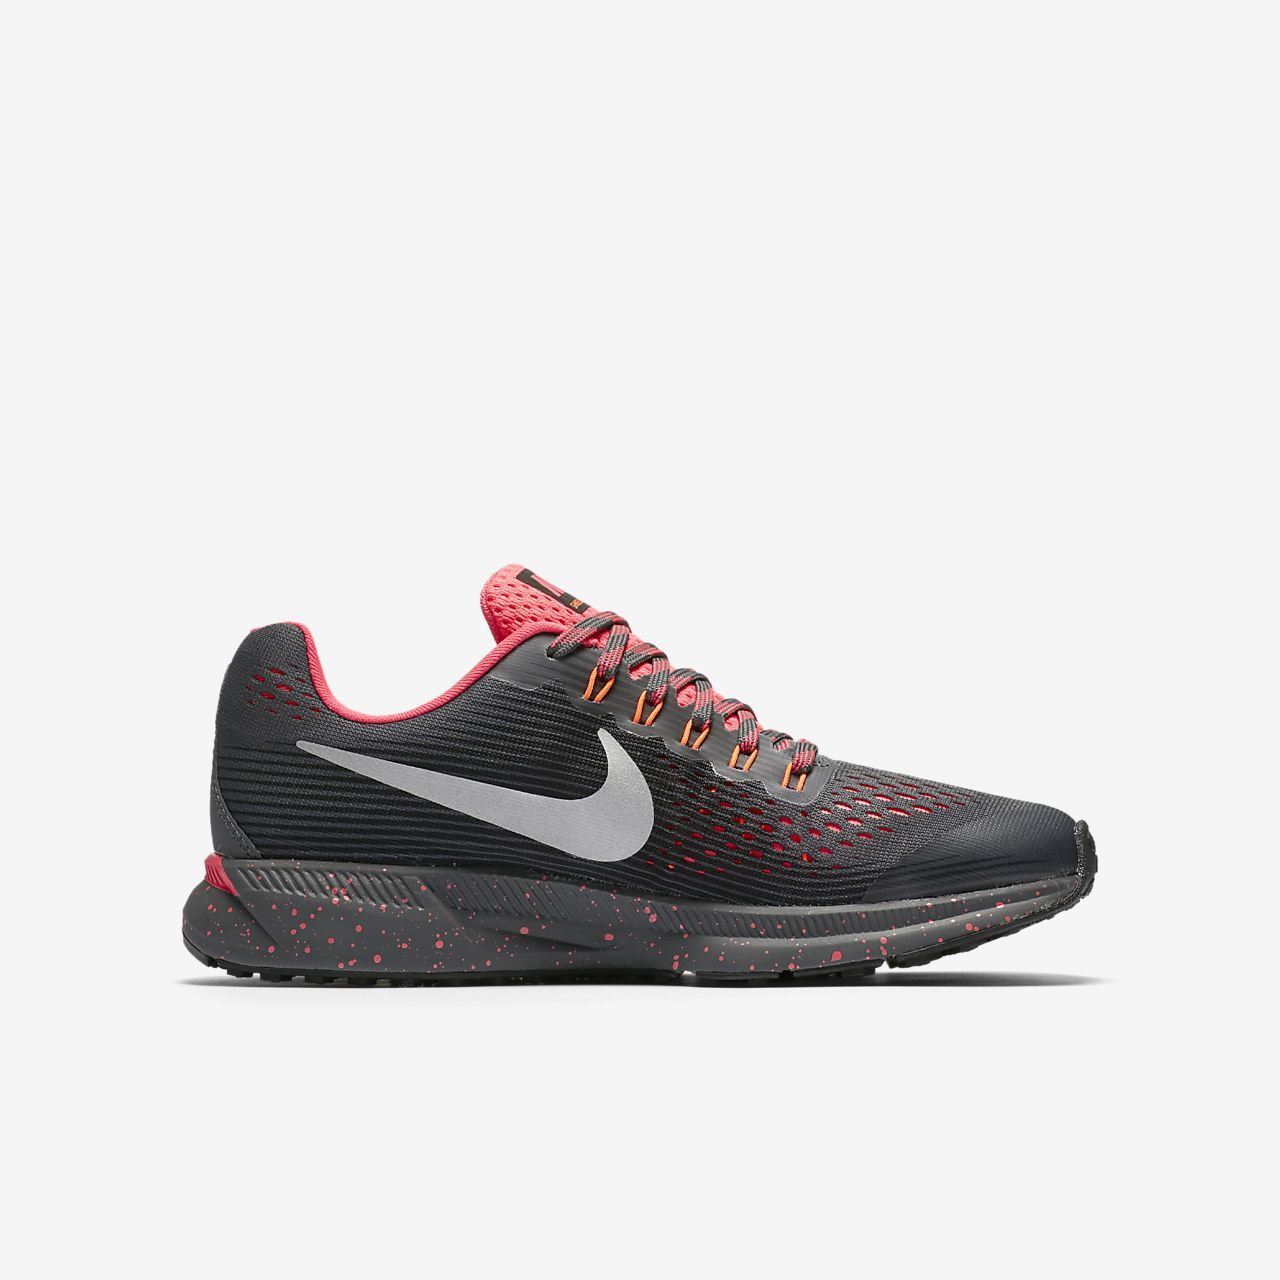 ... Nike Zoom Pegasus 34 Shield Big Kids' Running Shoe